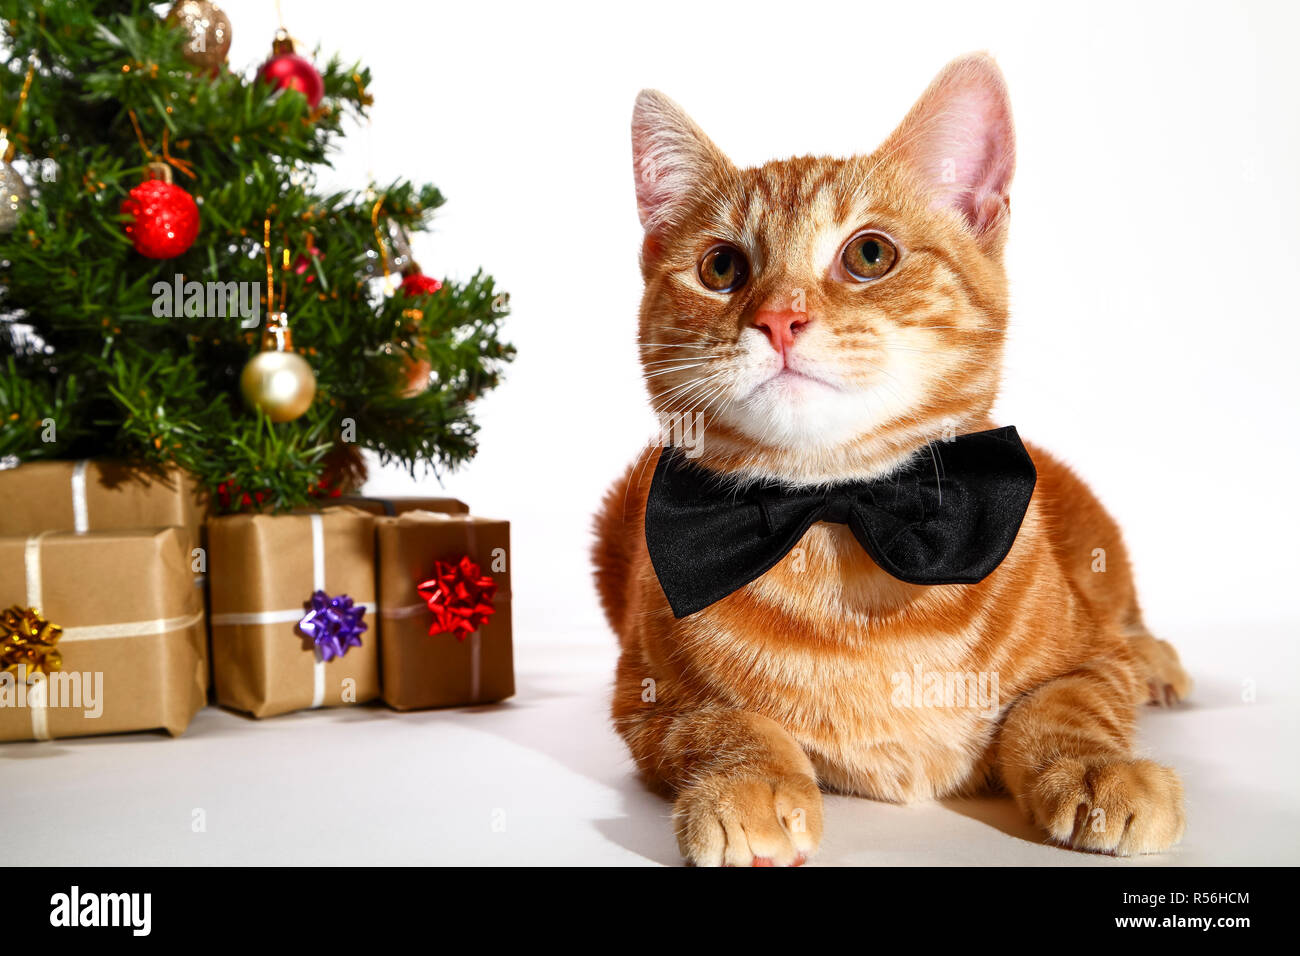 Mackerel tabby kitten wearing a bow tie posing at the side of a christmas tree and xmas presents - Stock Image